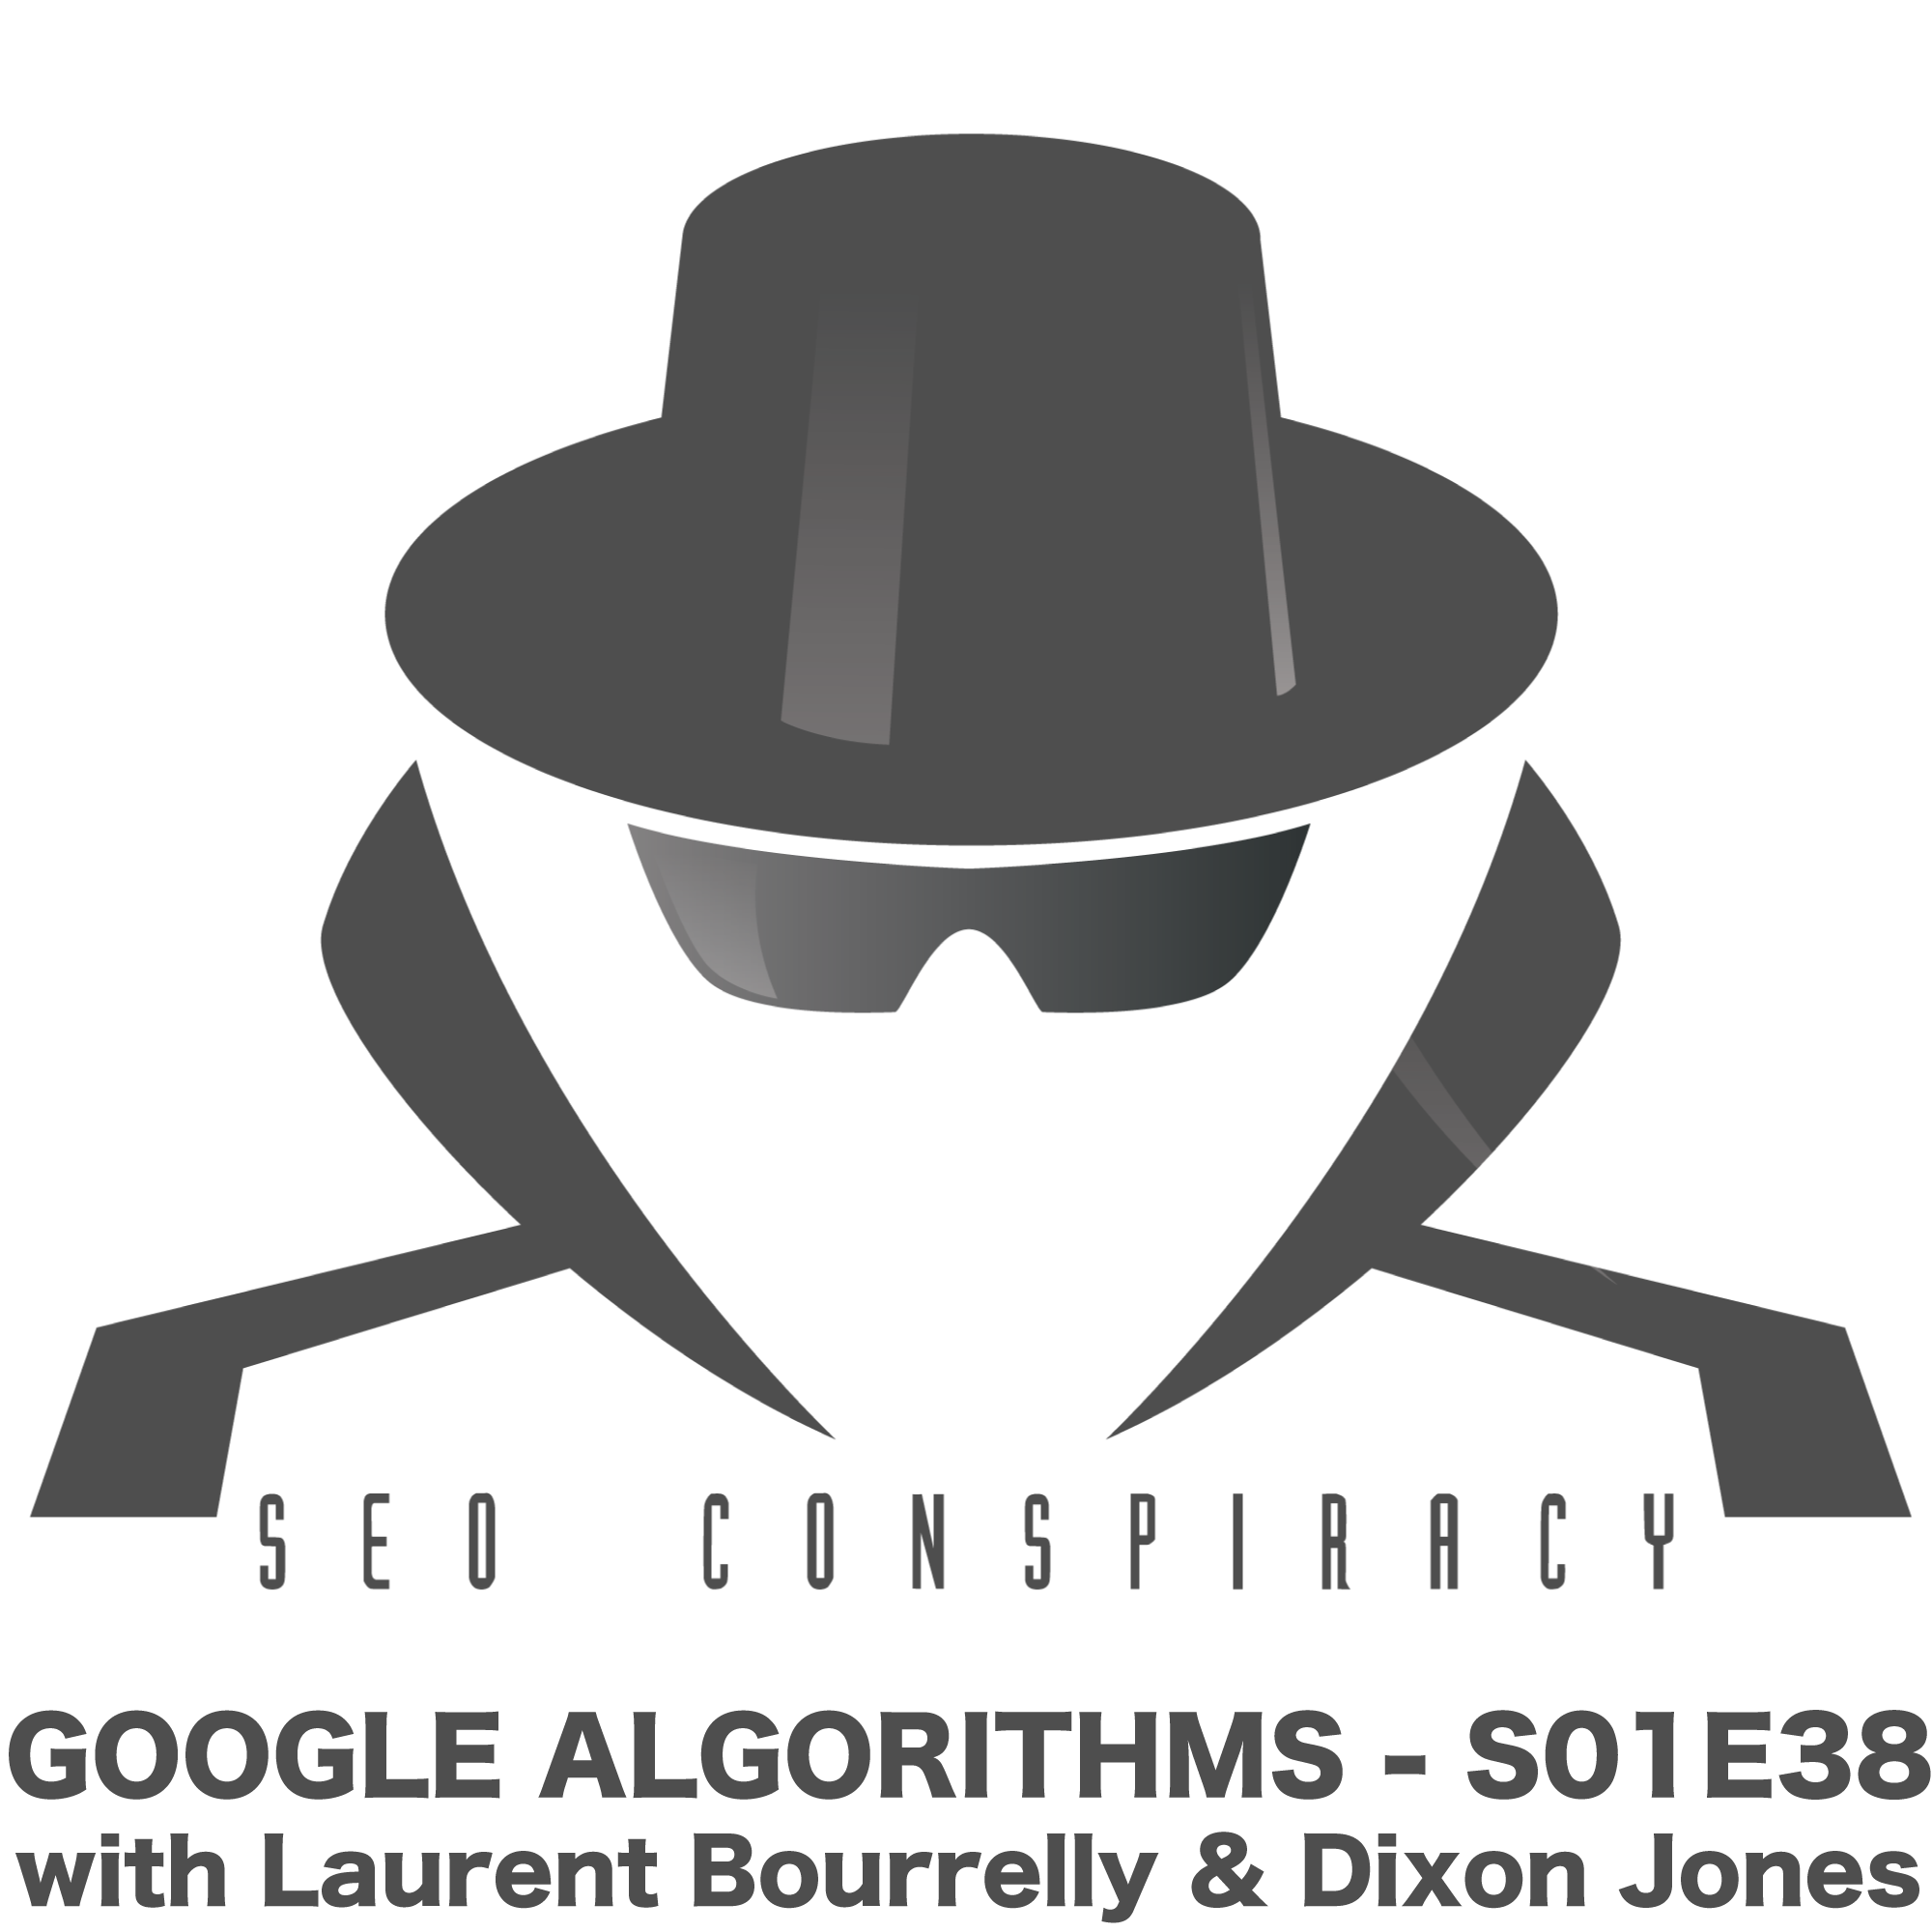 LSI Keywords, TF IDF, etc. : Let's debunk Google SEO Algo Myths - SEO Conspiracy S01E38